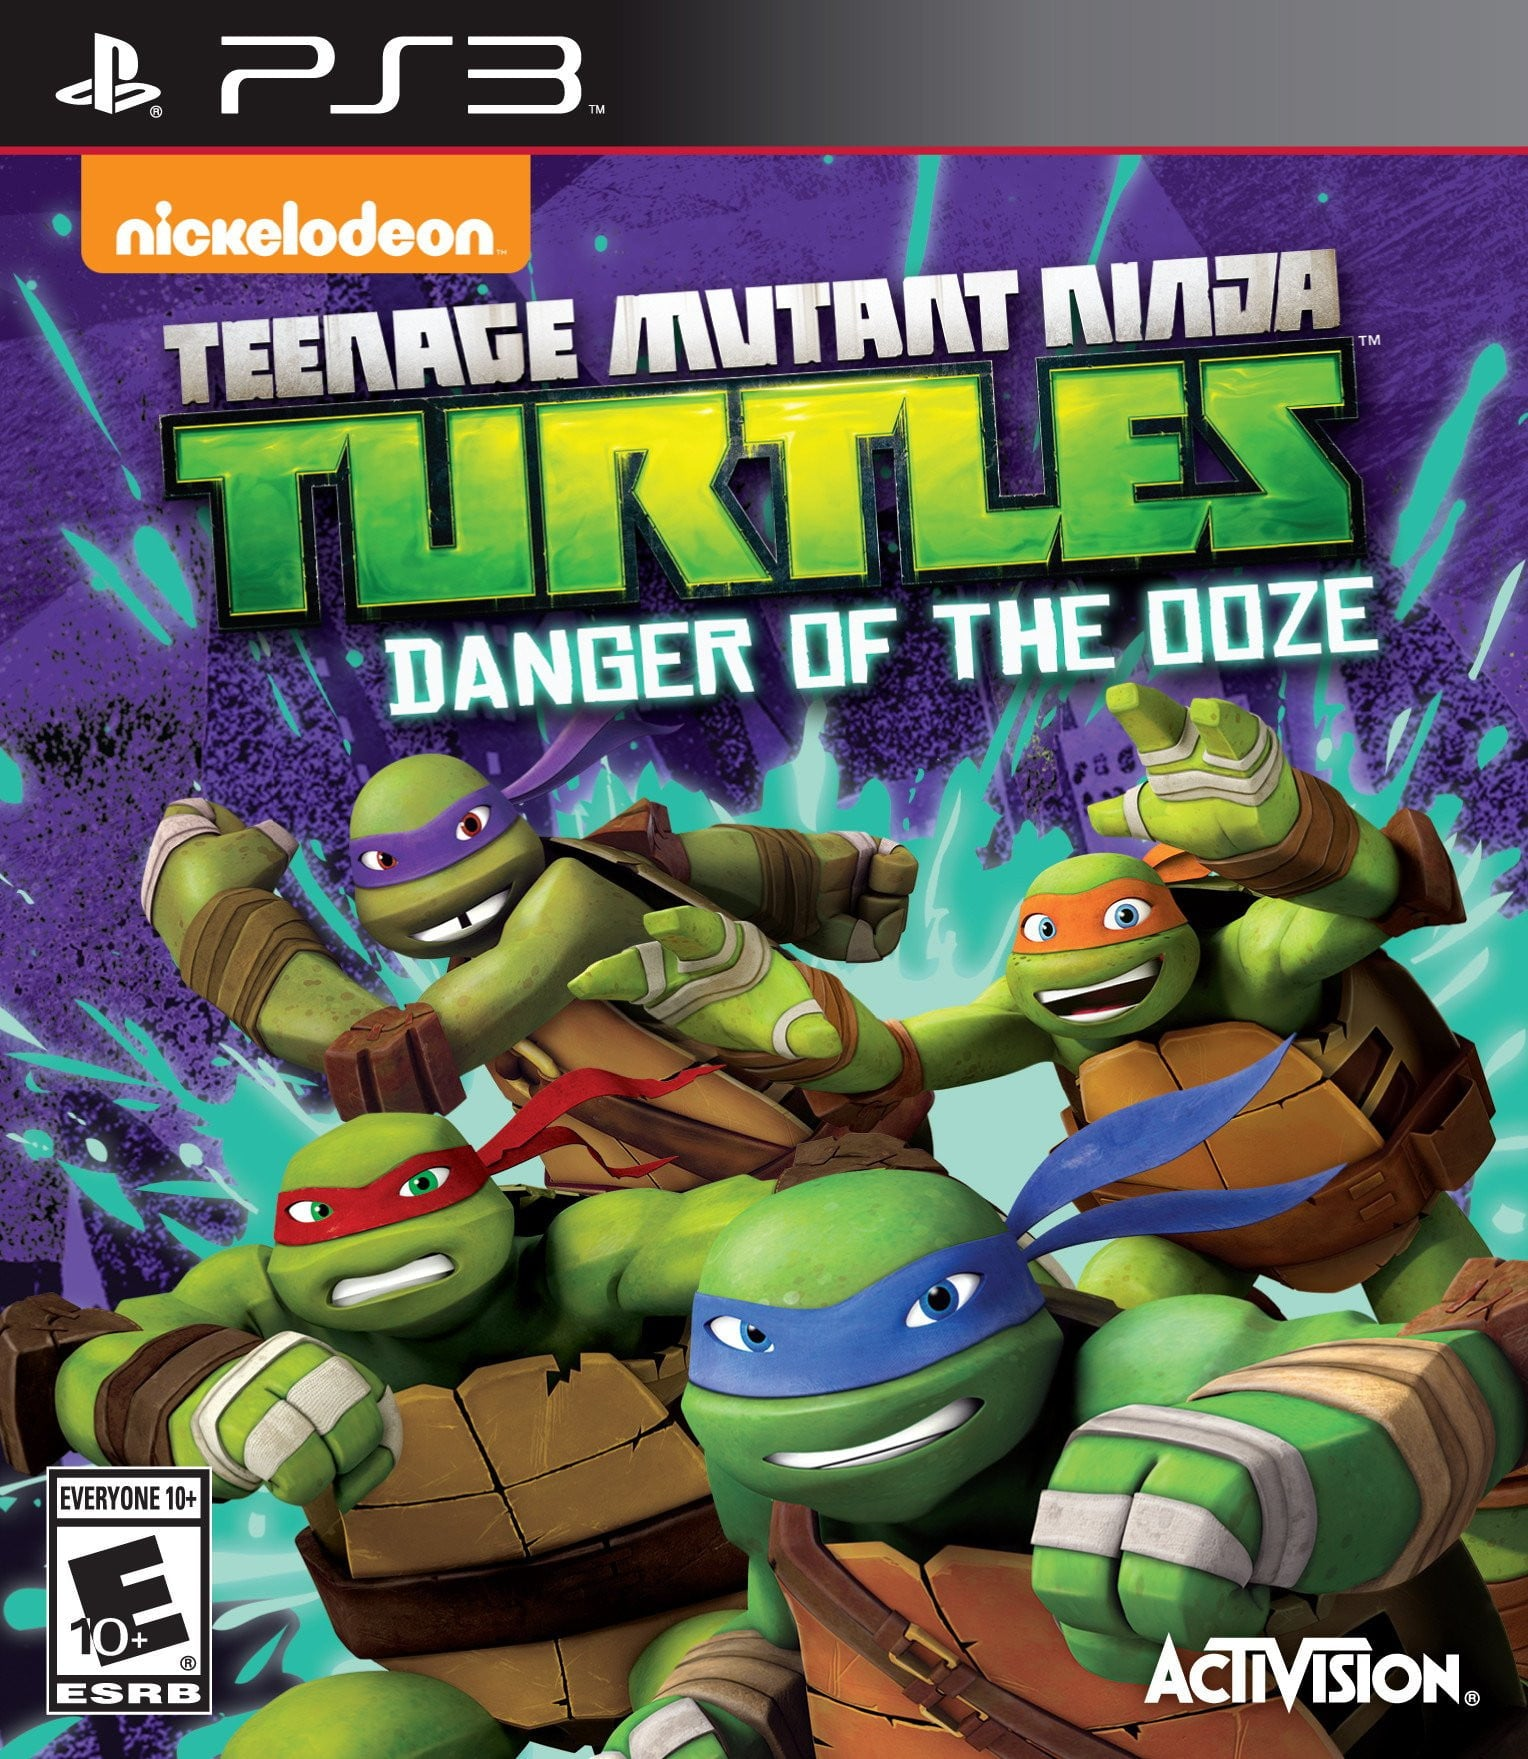 Teenage Mutant Ninja Turtles: Danger of ooze (PS3)